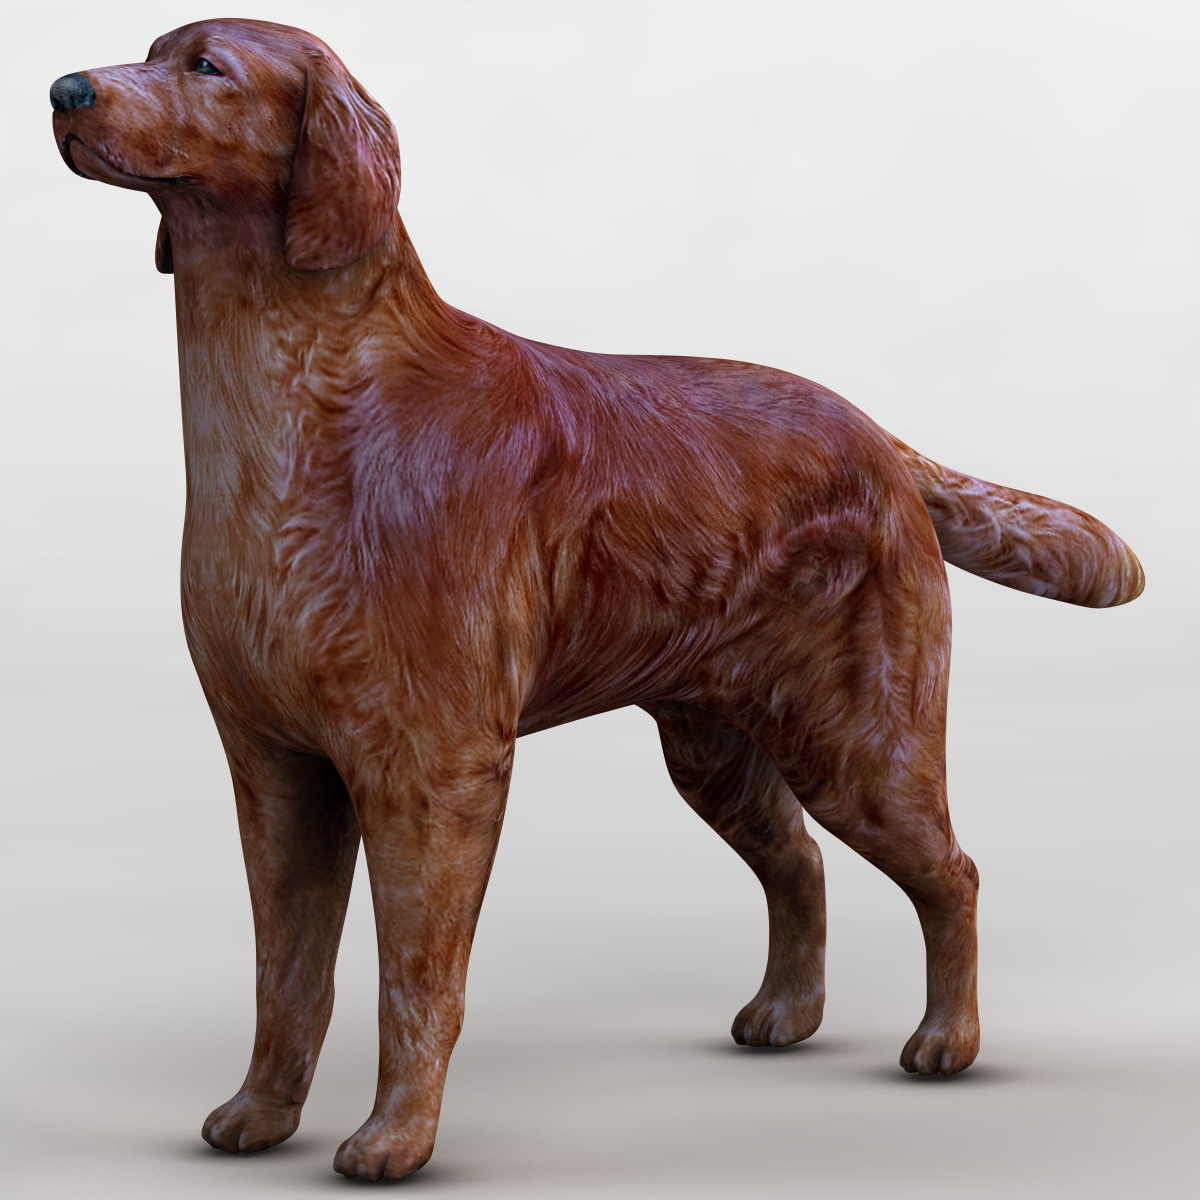 123421_Dog_Irish_Setter_004.jpg